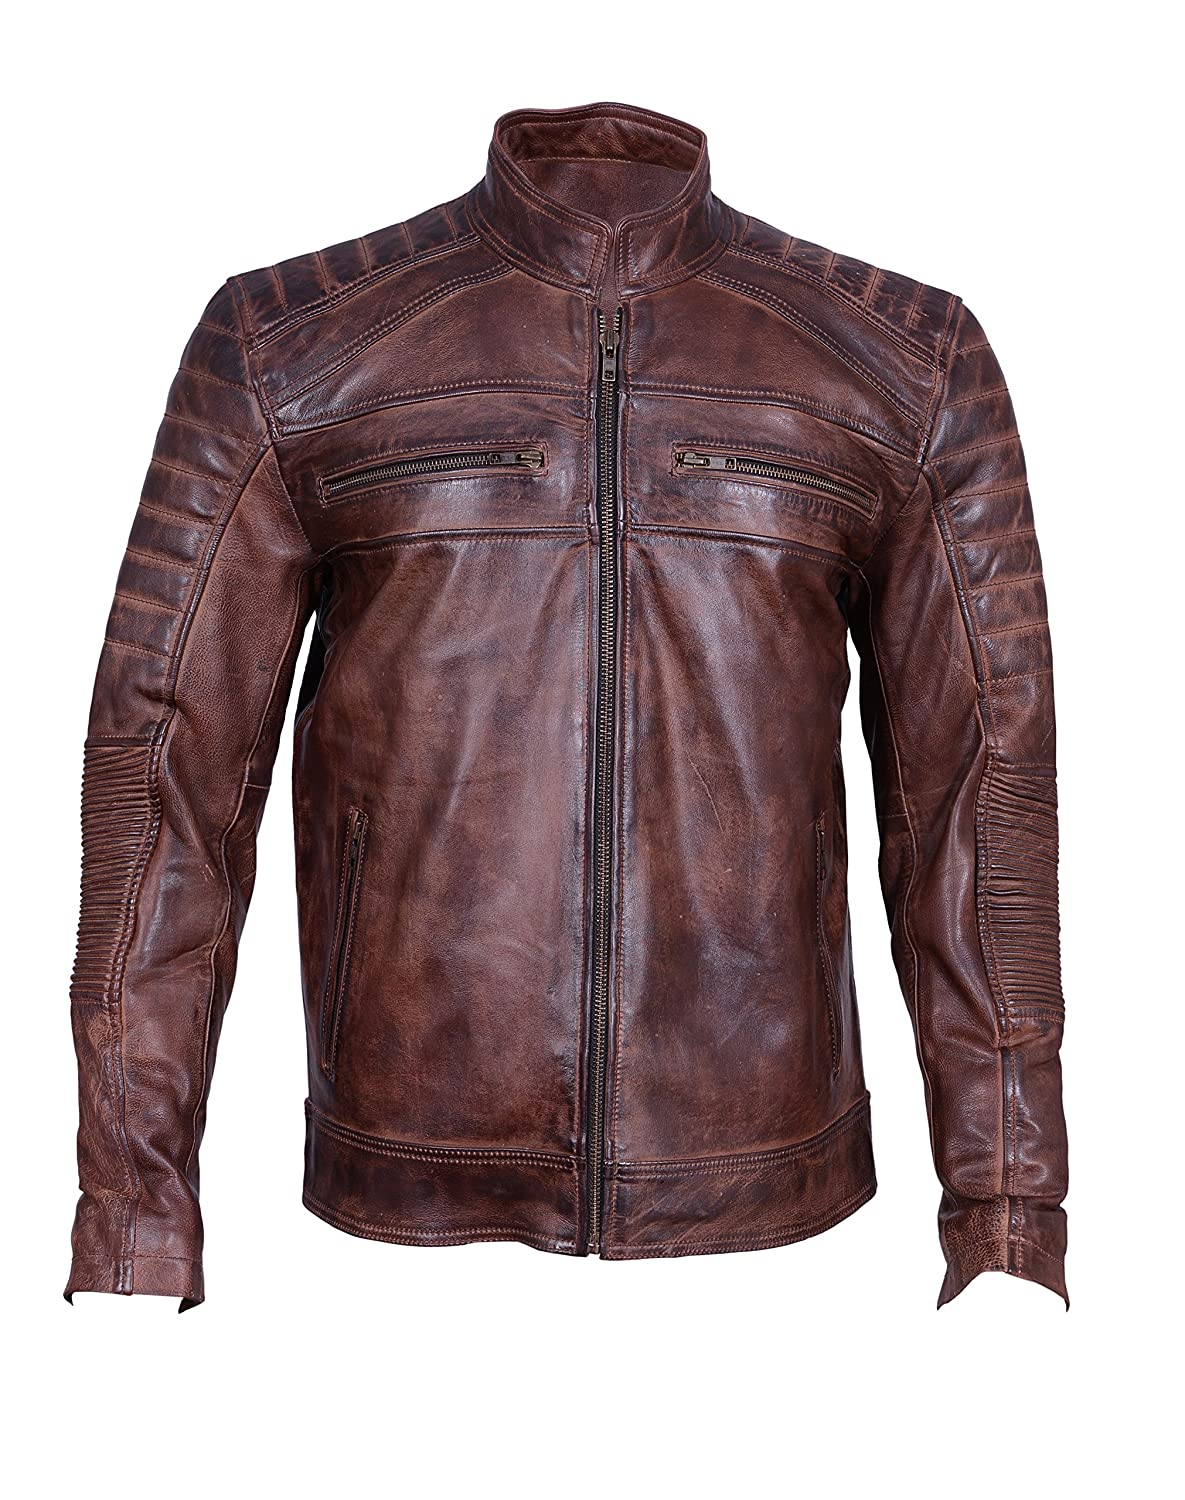 a18b87e0e0b61 Men s Motorcycle Biker Cafe Racer Vintage Motorcycle Distressed Brown  Leather Jacket (XX-Large) at Amazon Men s Clothing store